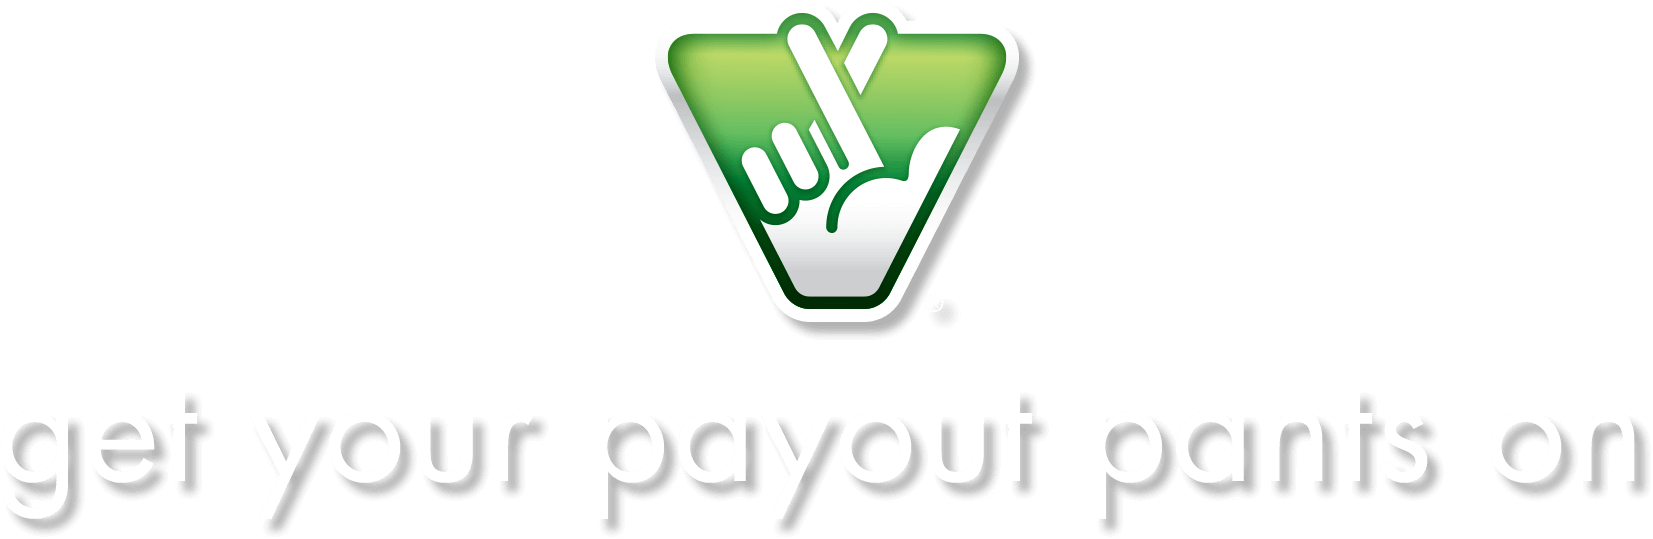 get your payout pants on